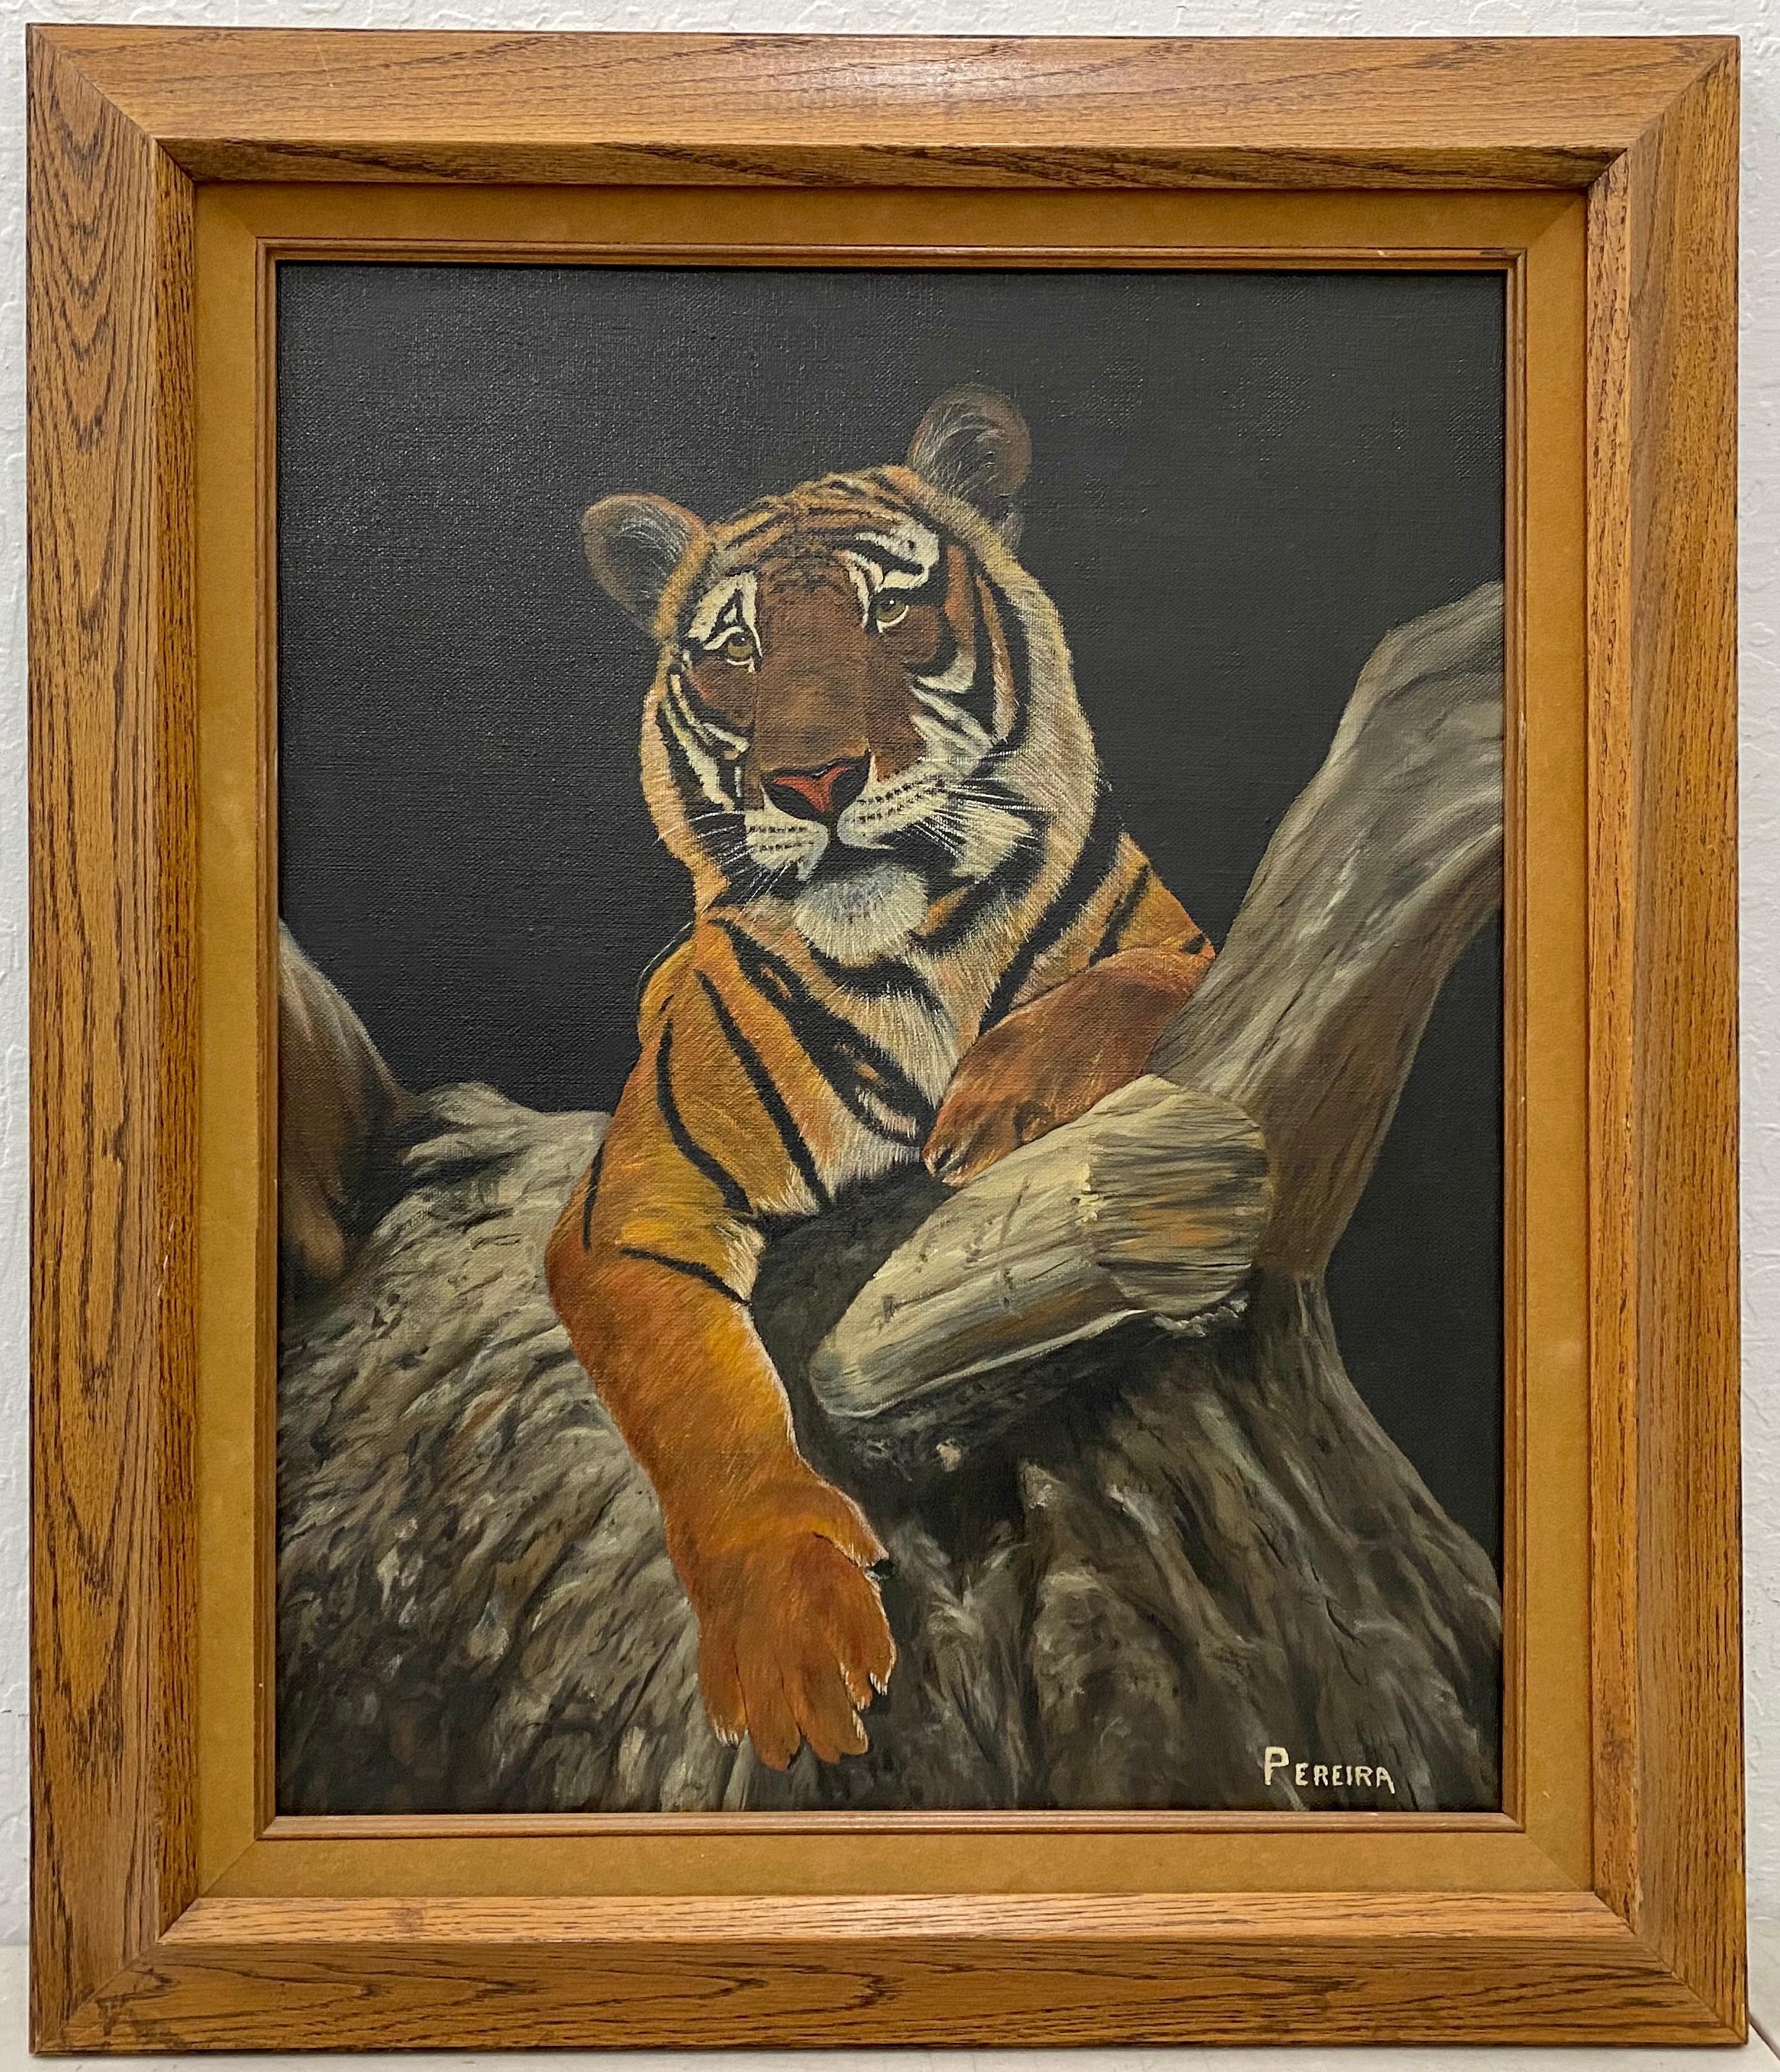 Vintage Portrait of a Tiger in a Tree by Periera C.1970